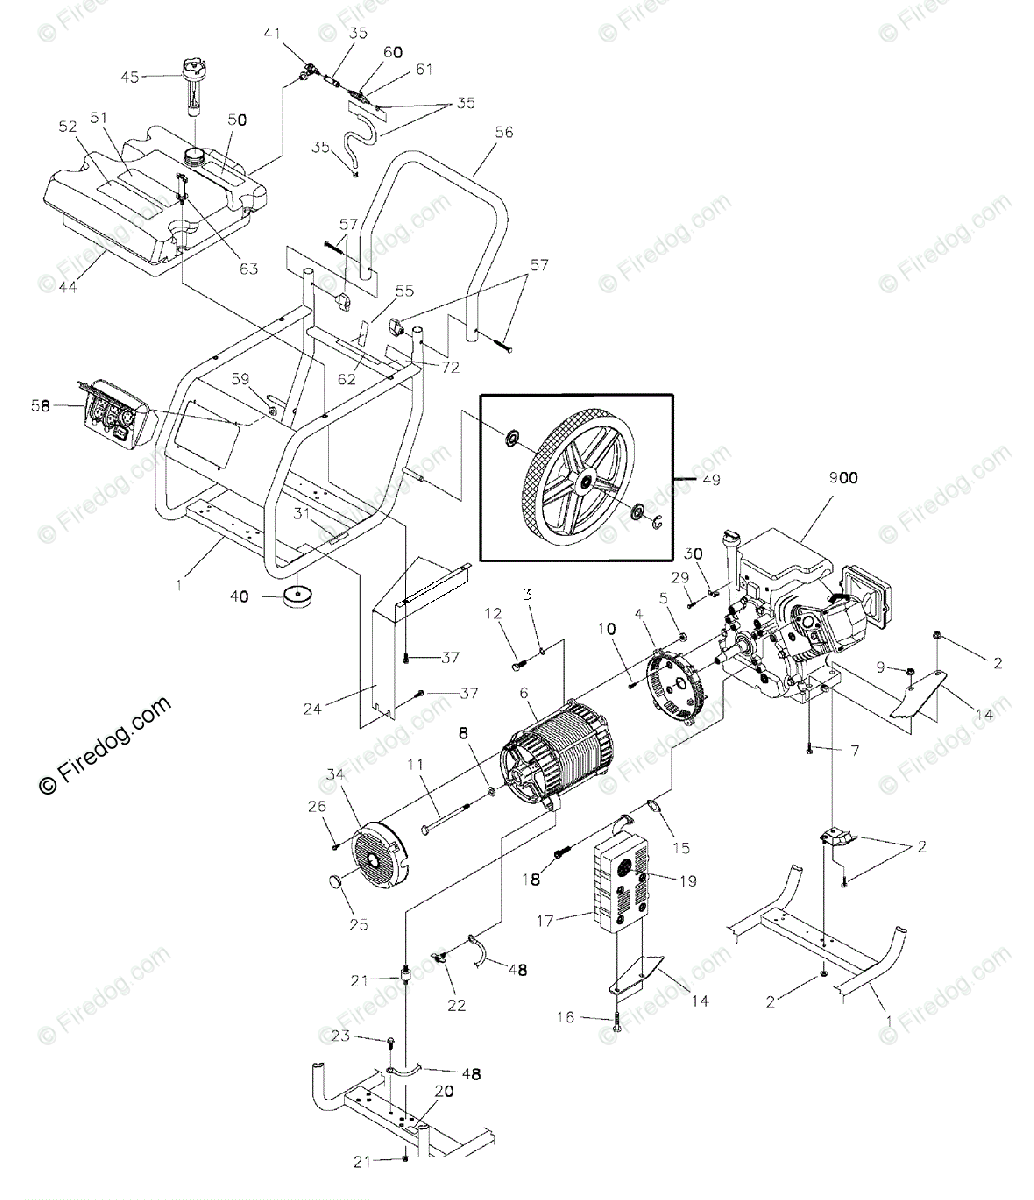 Briggs Starter Generator Wiring Diagram Books Of Images Gallery